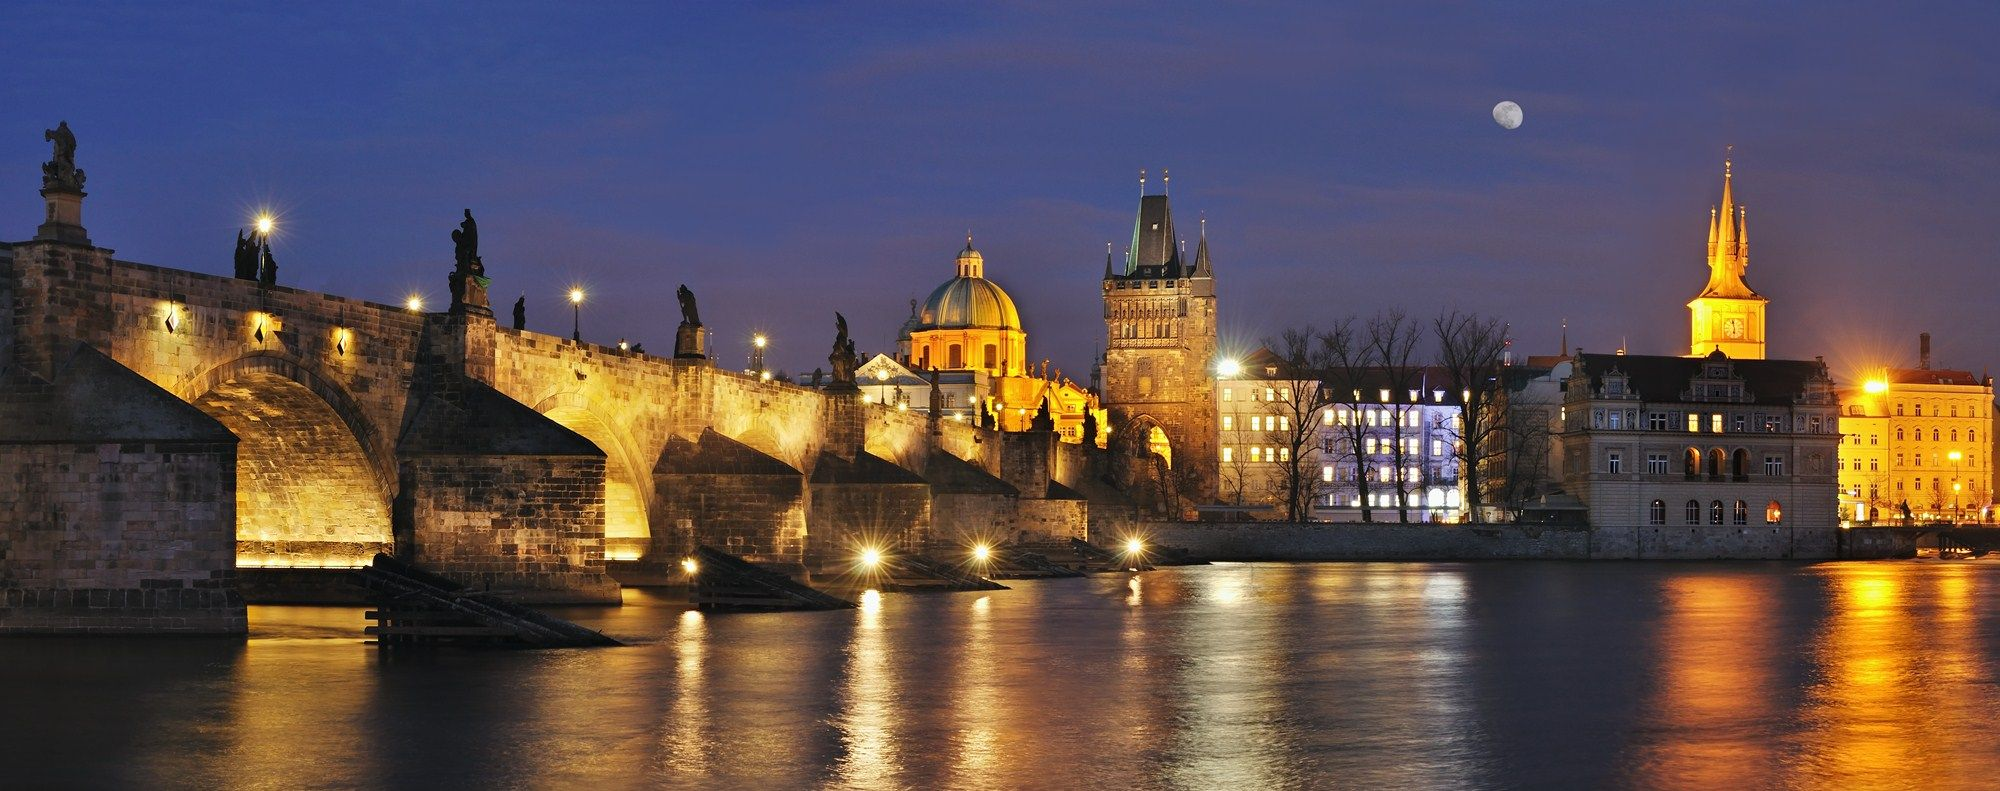 Charles Bridge and bridge towers